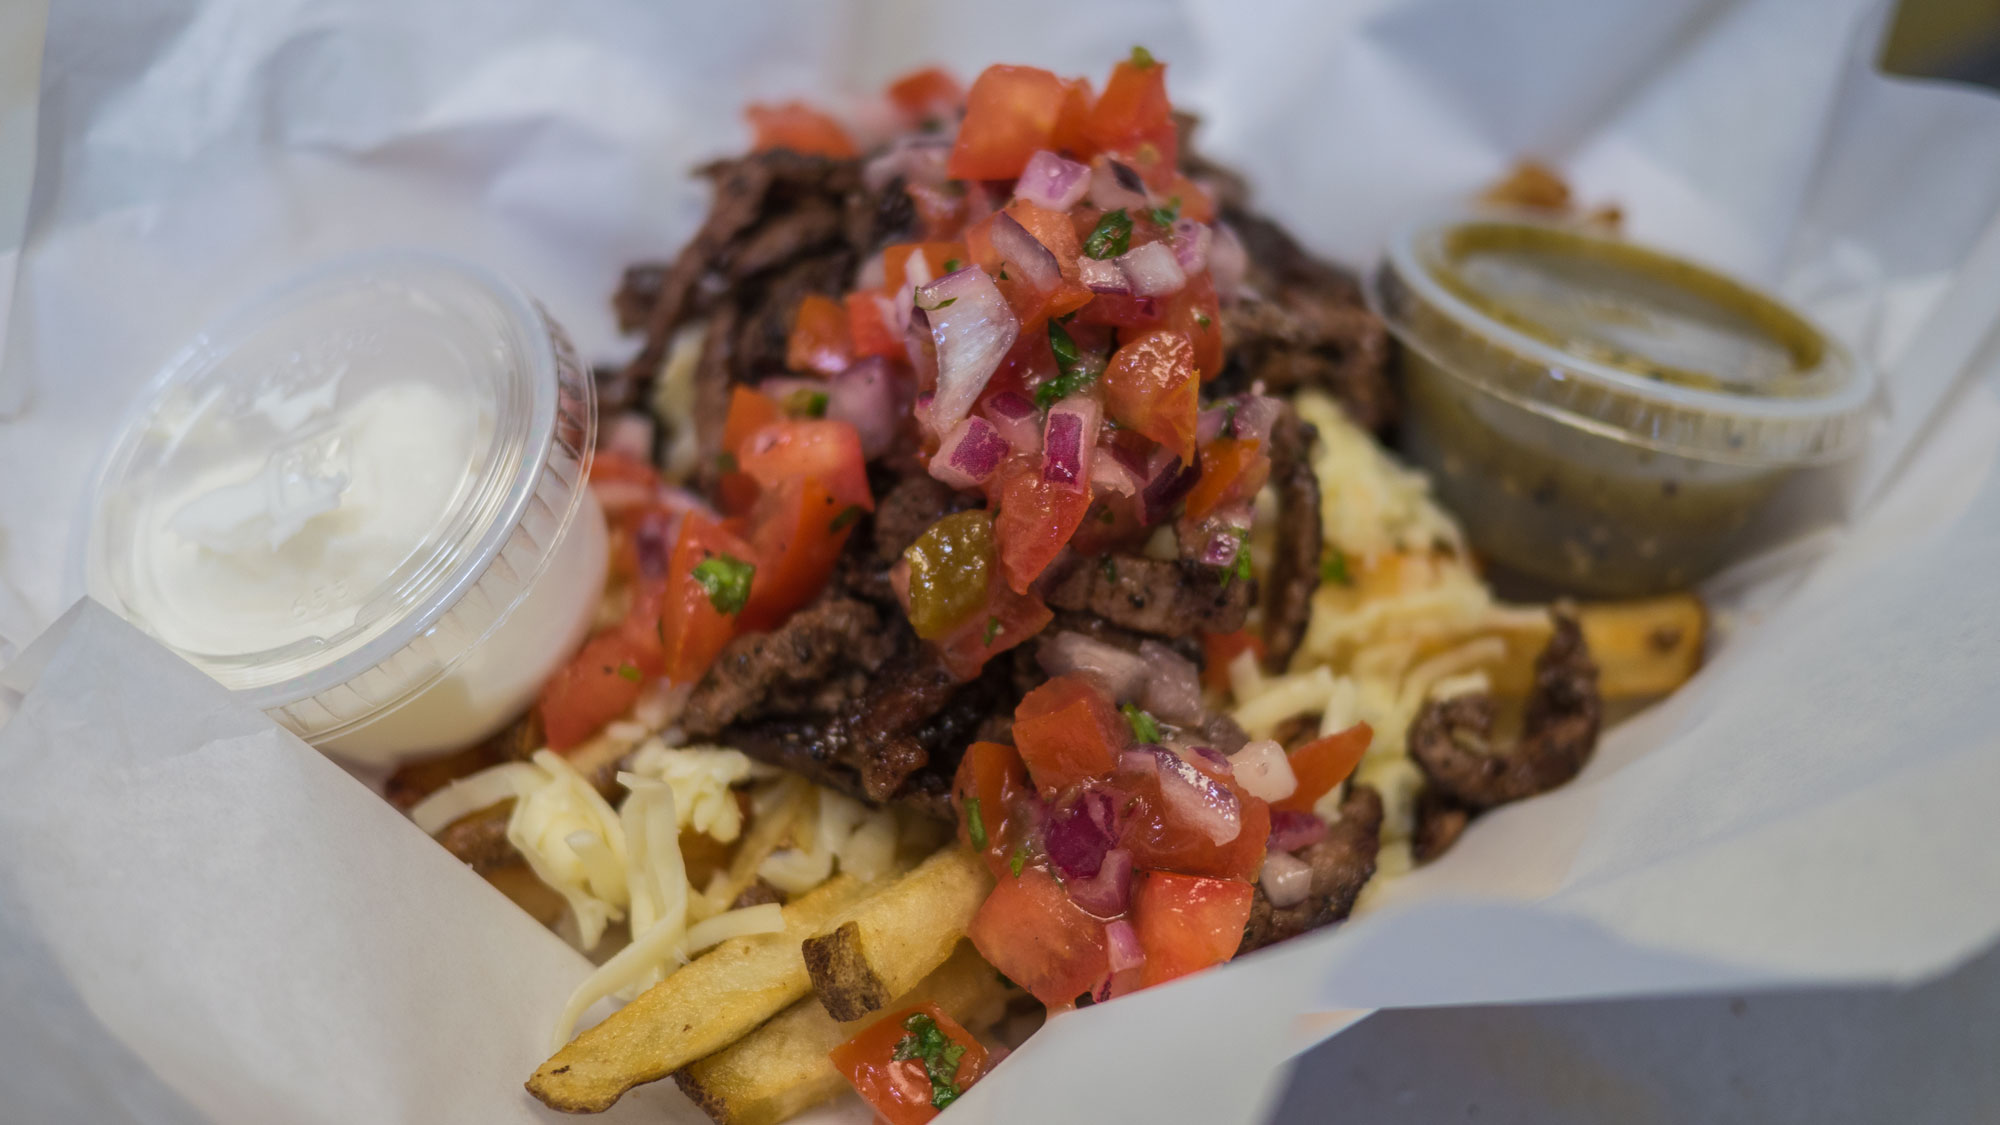 CARNE ASADA FRIES - Grilled beef with pico de gallo, Monterey jack cheese, salsa verde, sour cream over fresh cut fries.